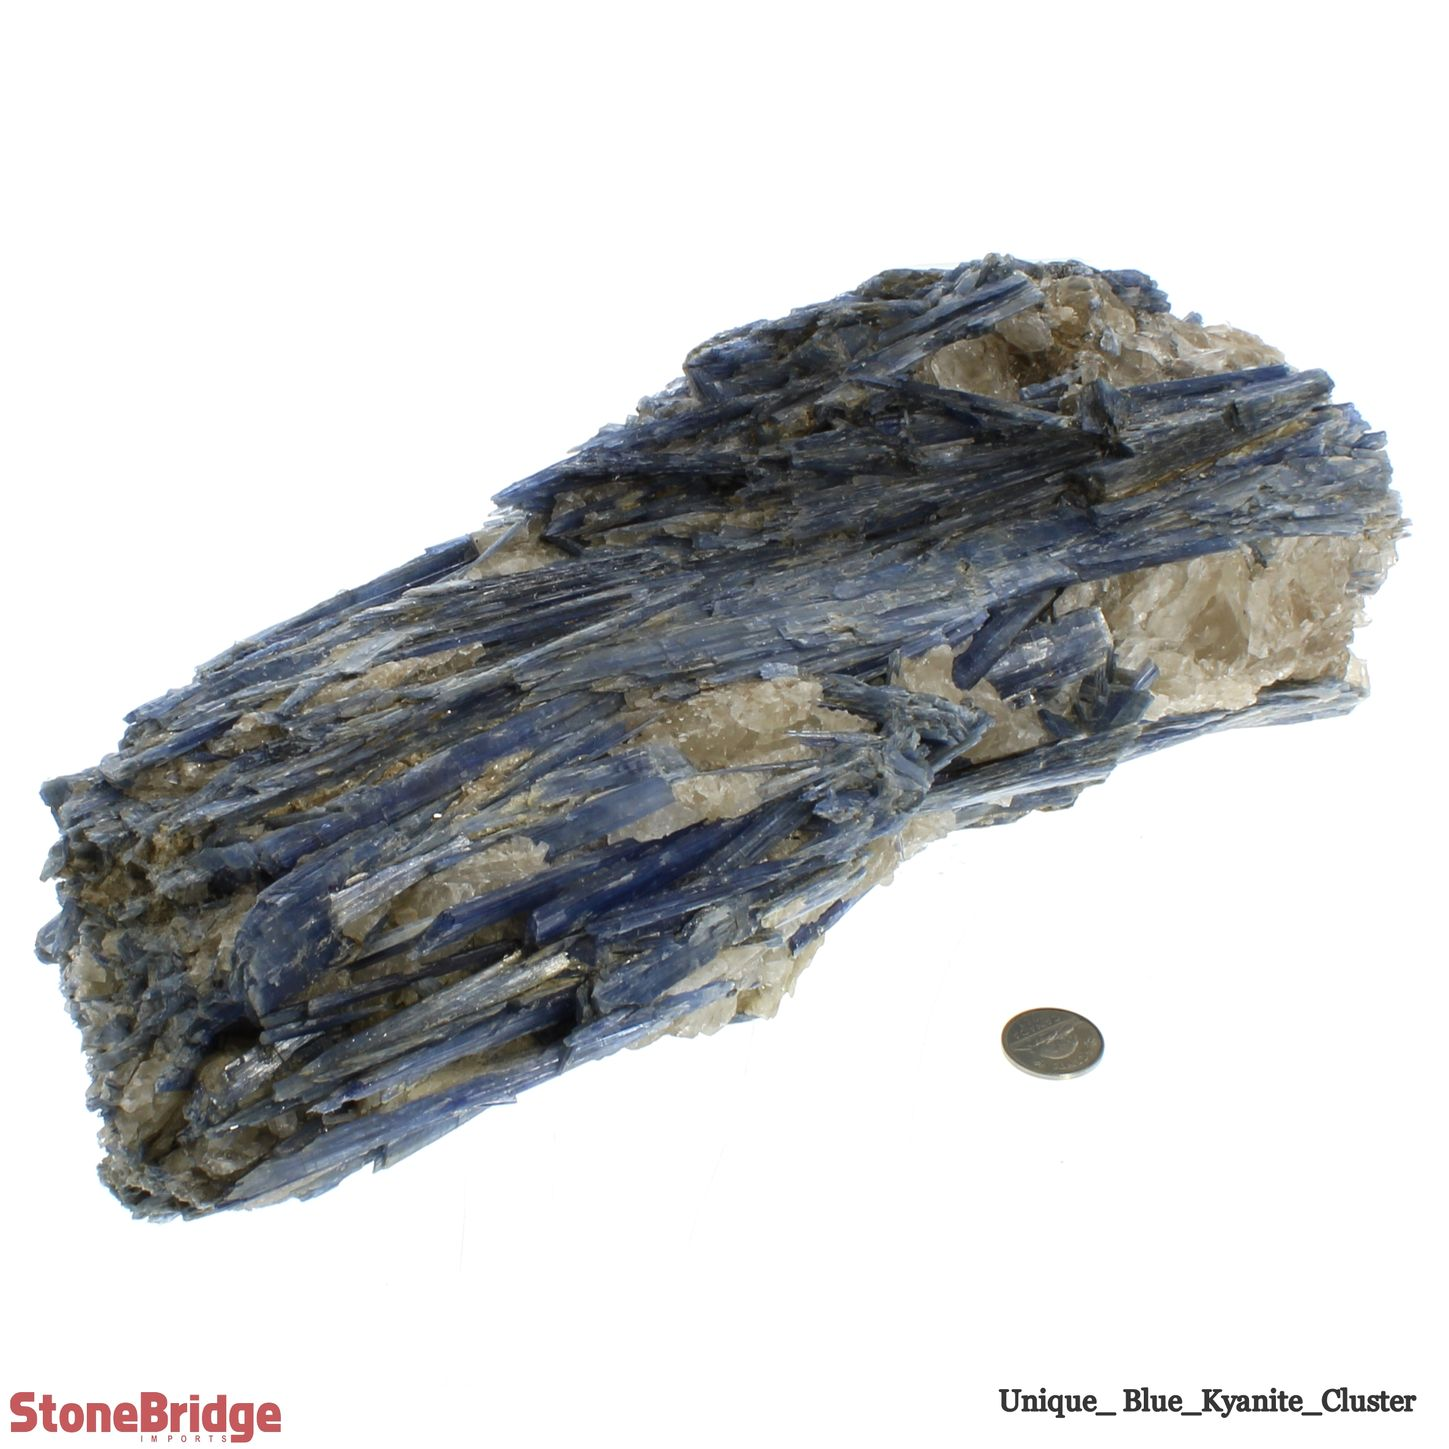 "Blue Kyanite Cluster - Unique #22 - 13 1/2"" x 5 3/4"" x 5 3/4"""